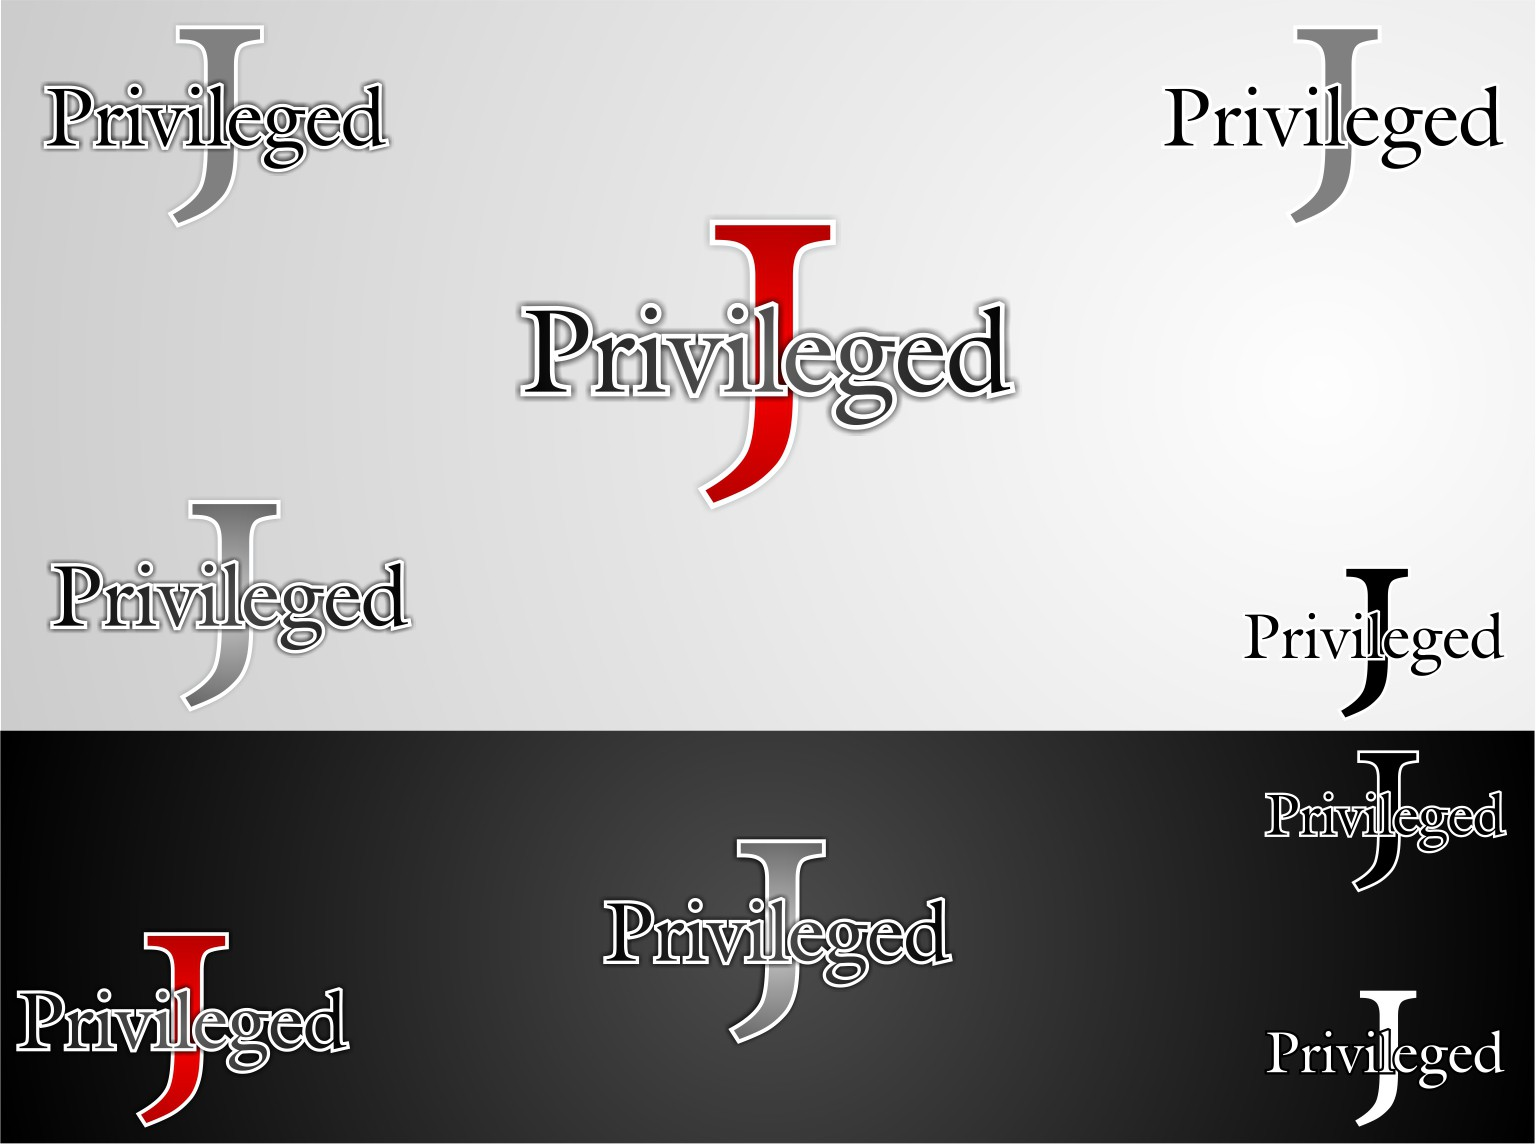 New logo wanted for J Privileged